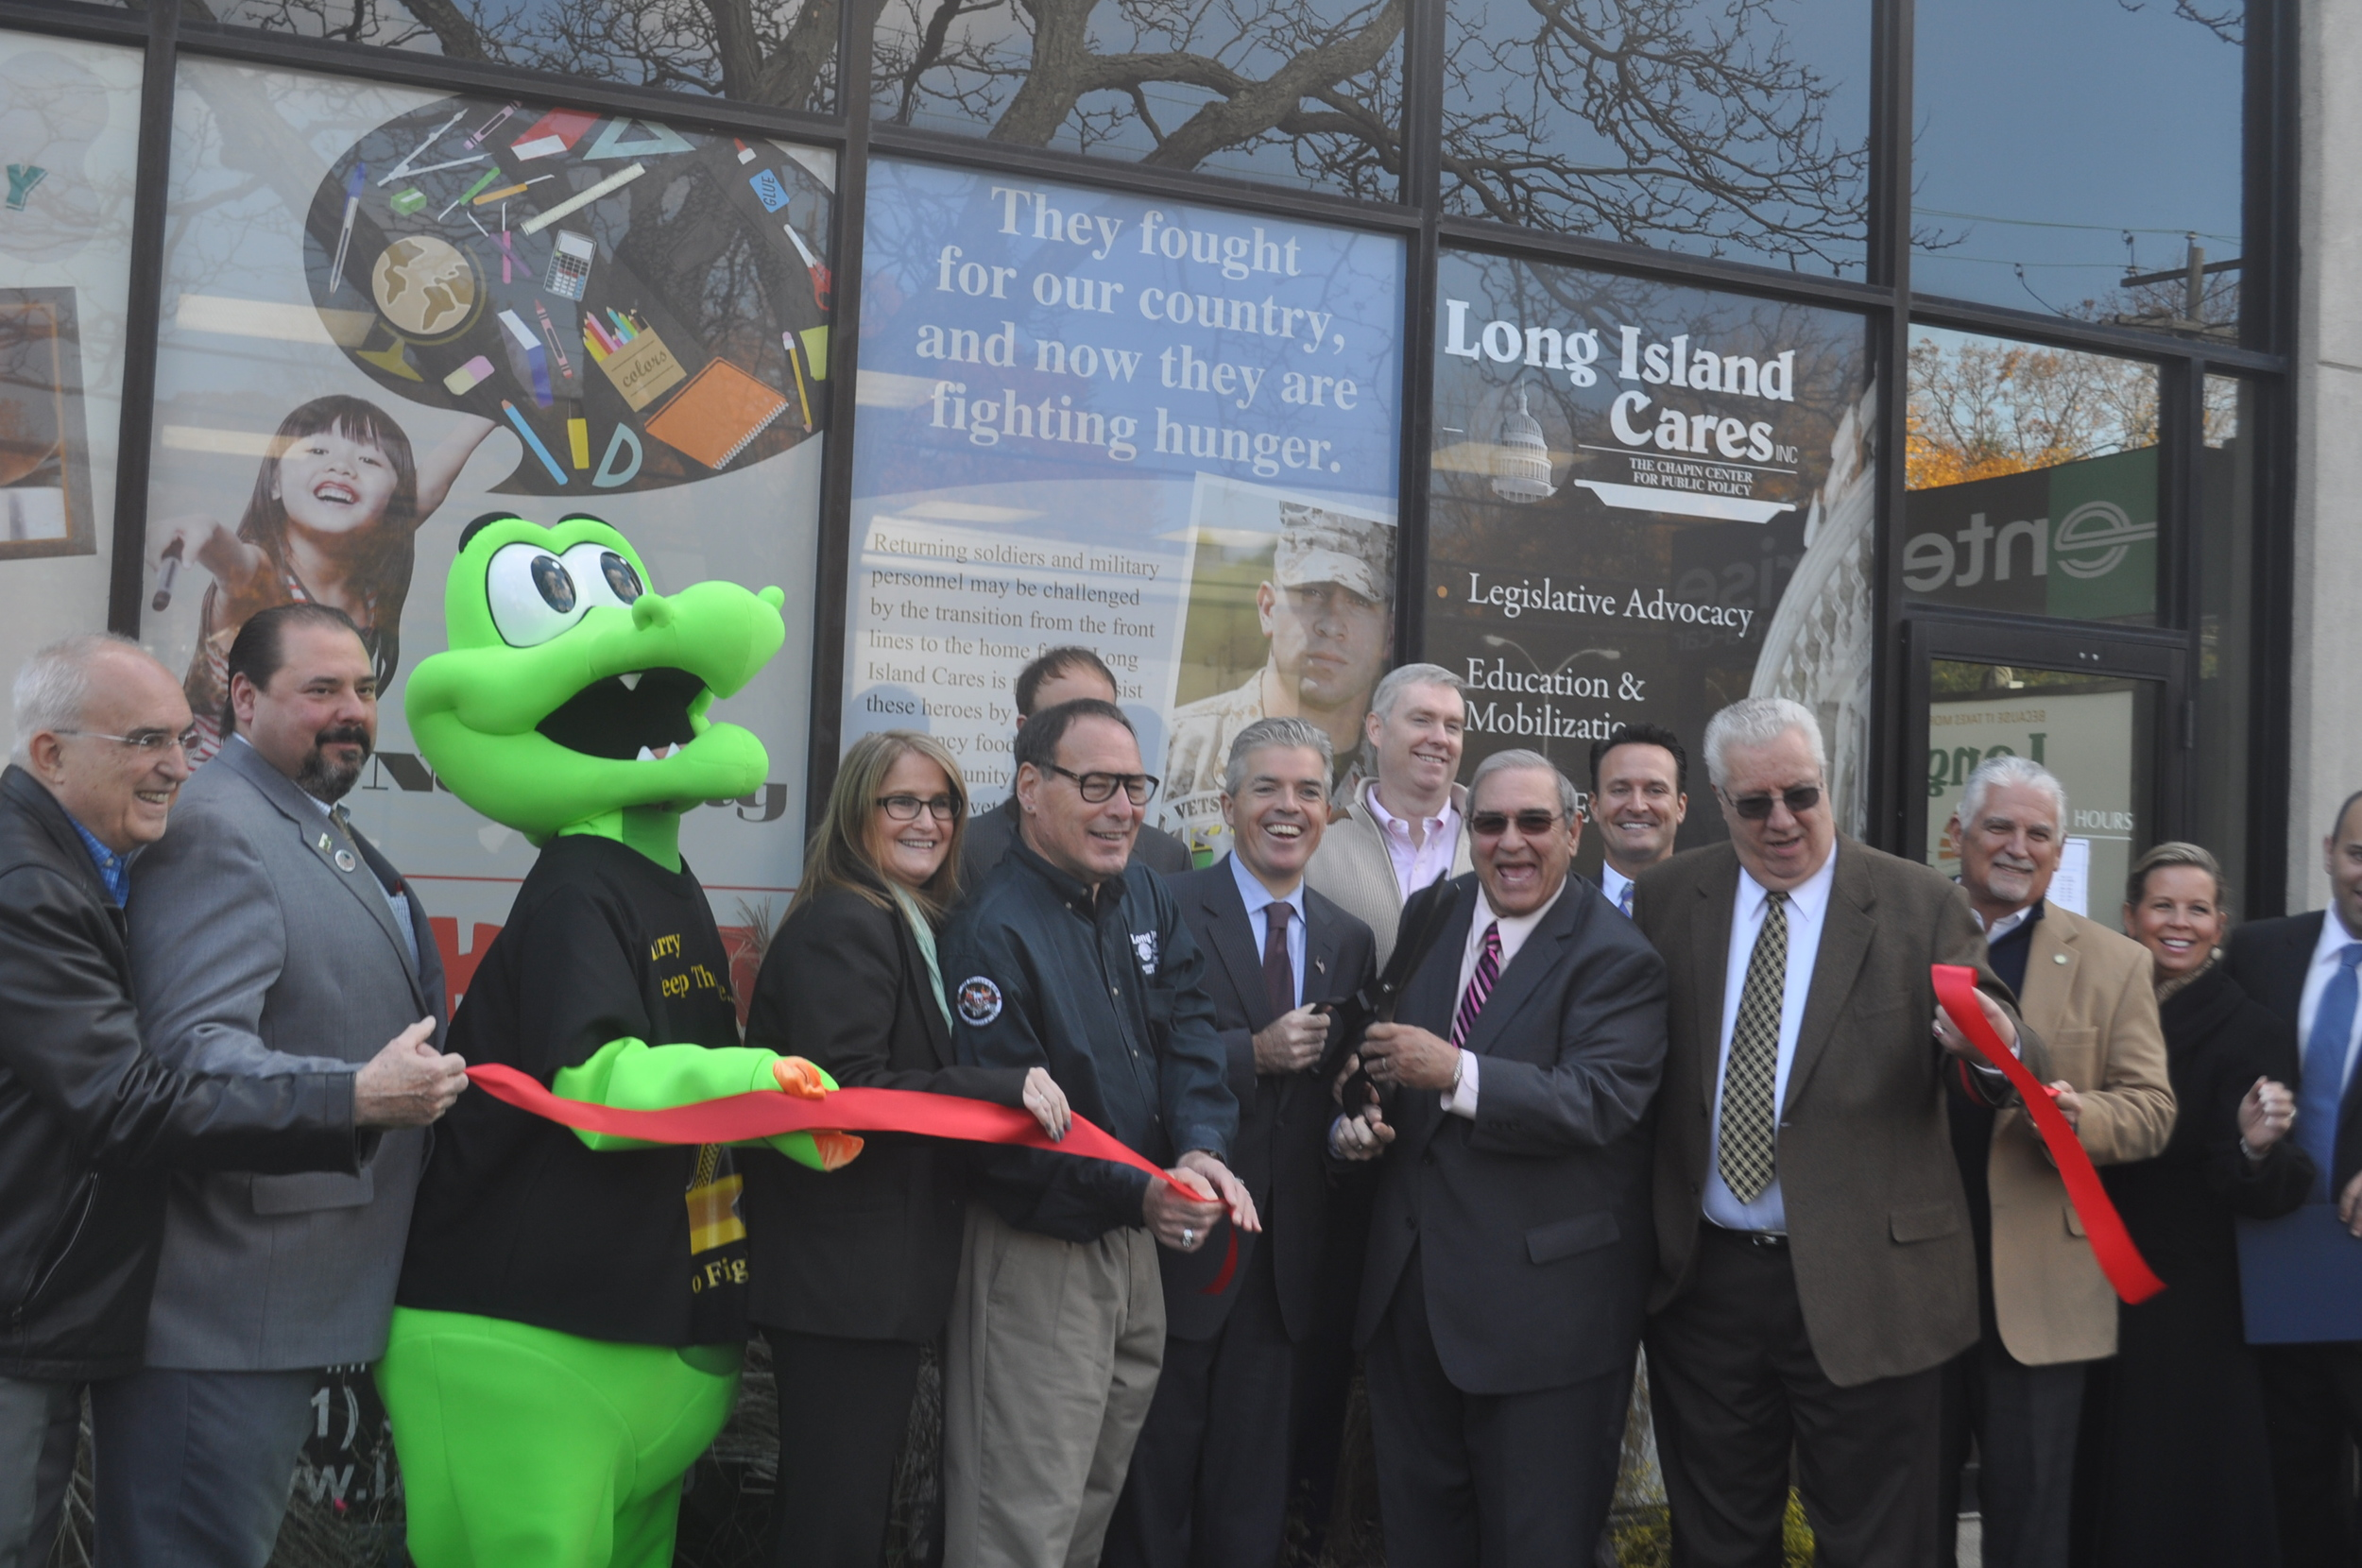 Elected officials join Long Island Cares CEO Paule Pachter in cutting the ribbon on the Harry Chapin Food Bank and Humanitarian Center in Huntington Station Friday.